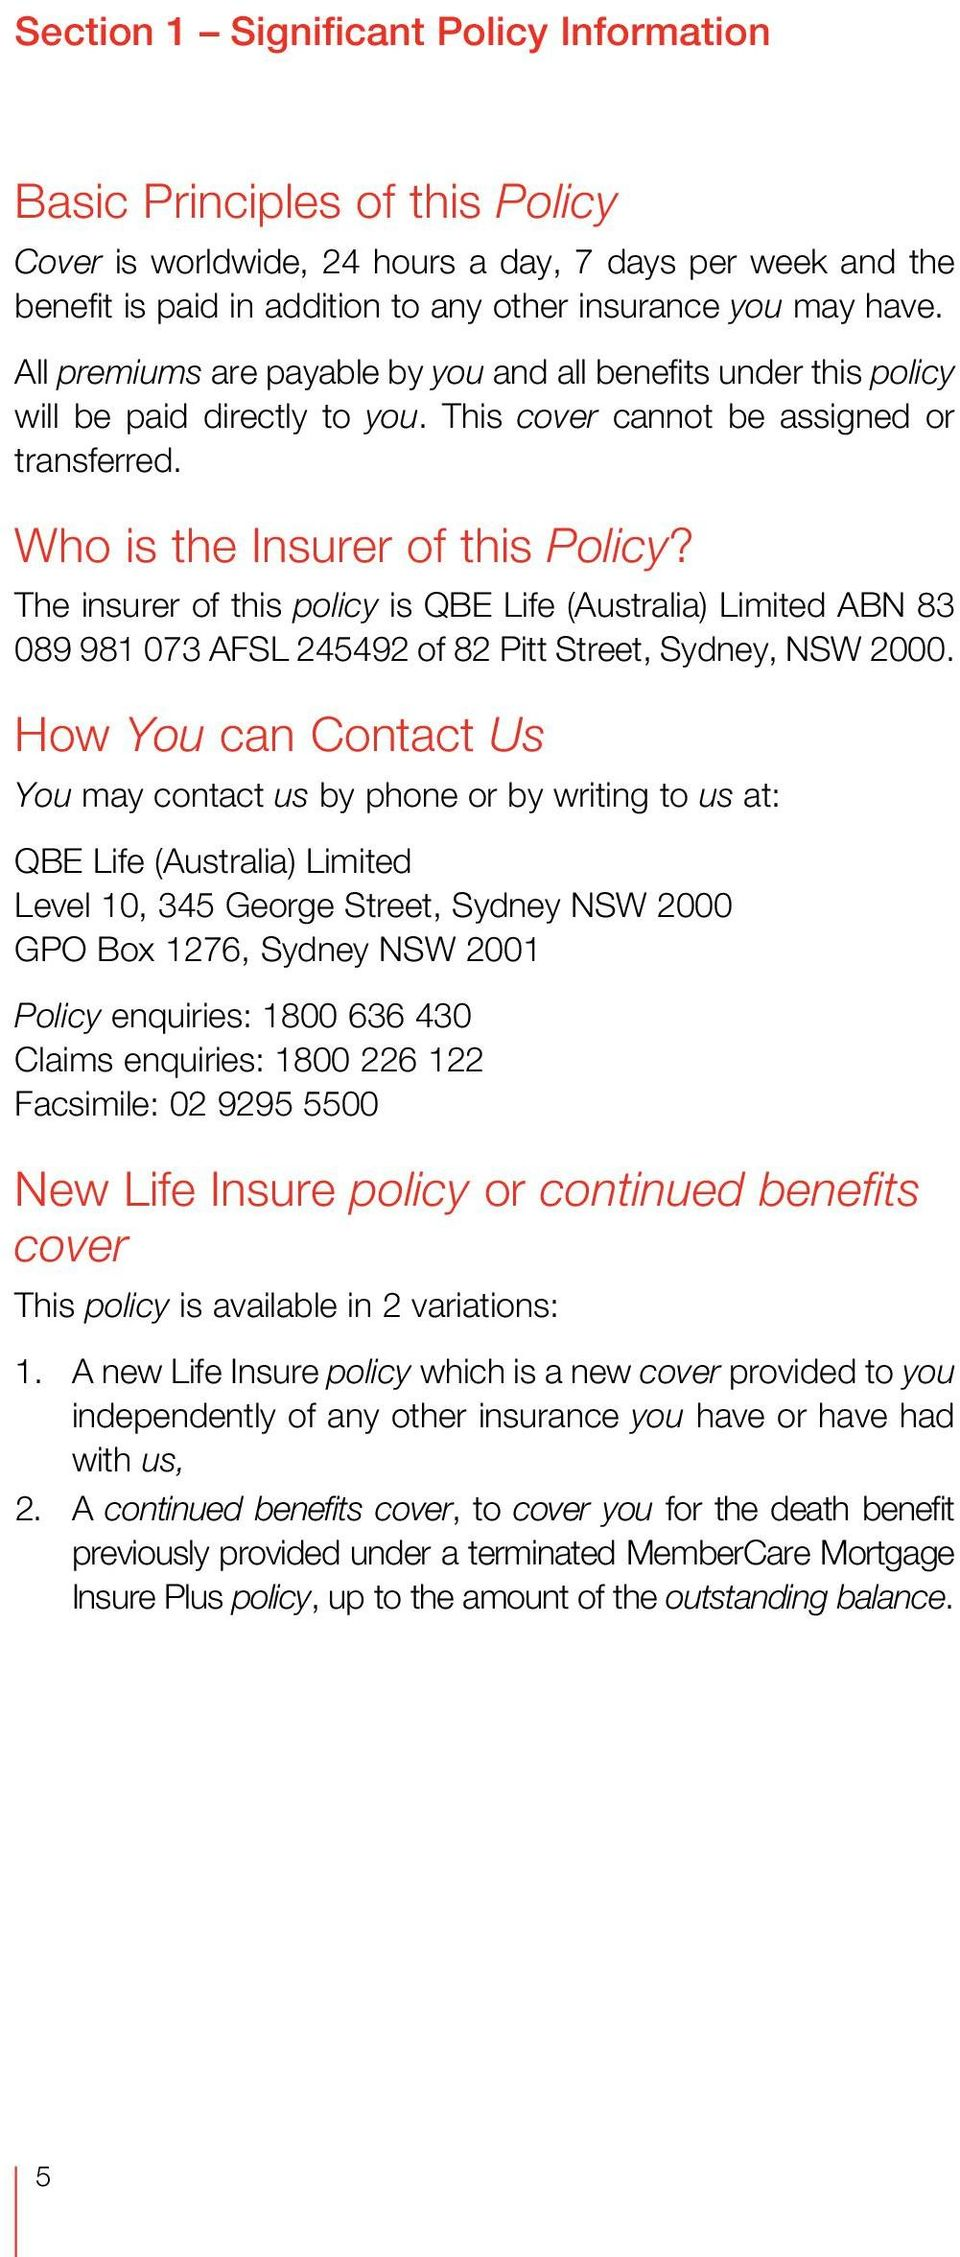 The insurer of this policy is QBE Life (Australia) Limited ABN 83 089 981 073 AFSL 245492 of 82 Pitt Street, Sydney, NSW 2000.